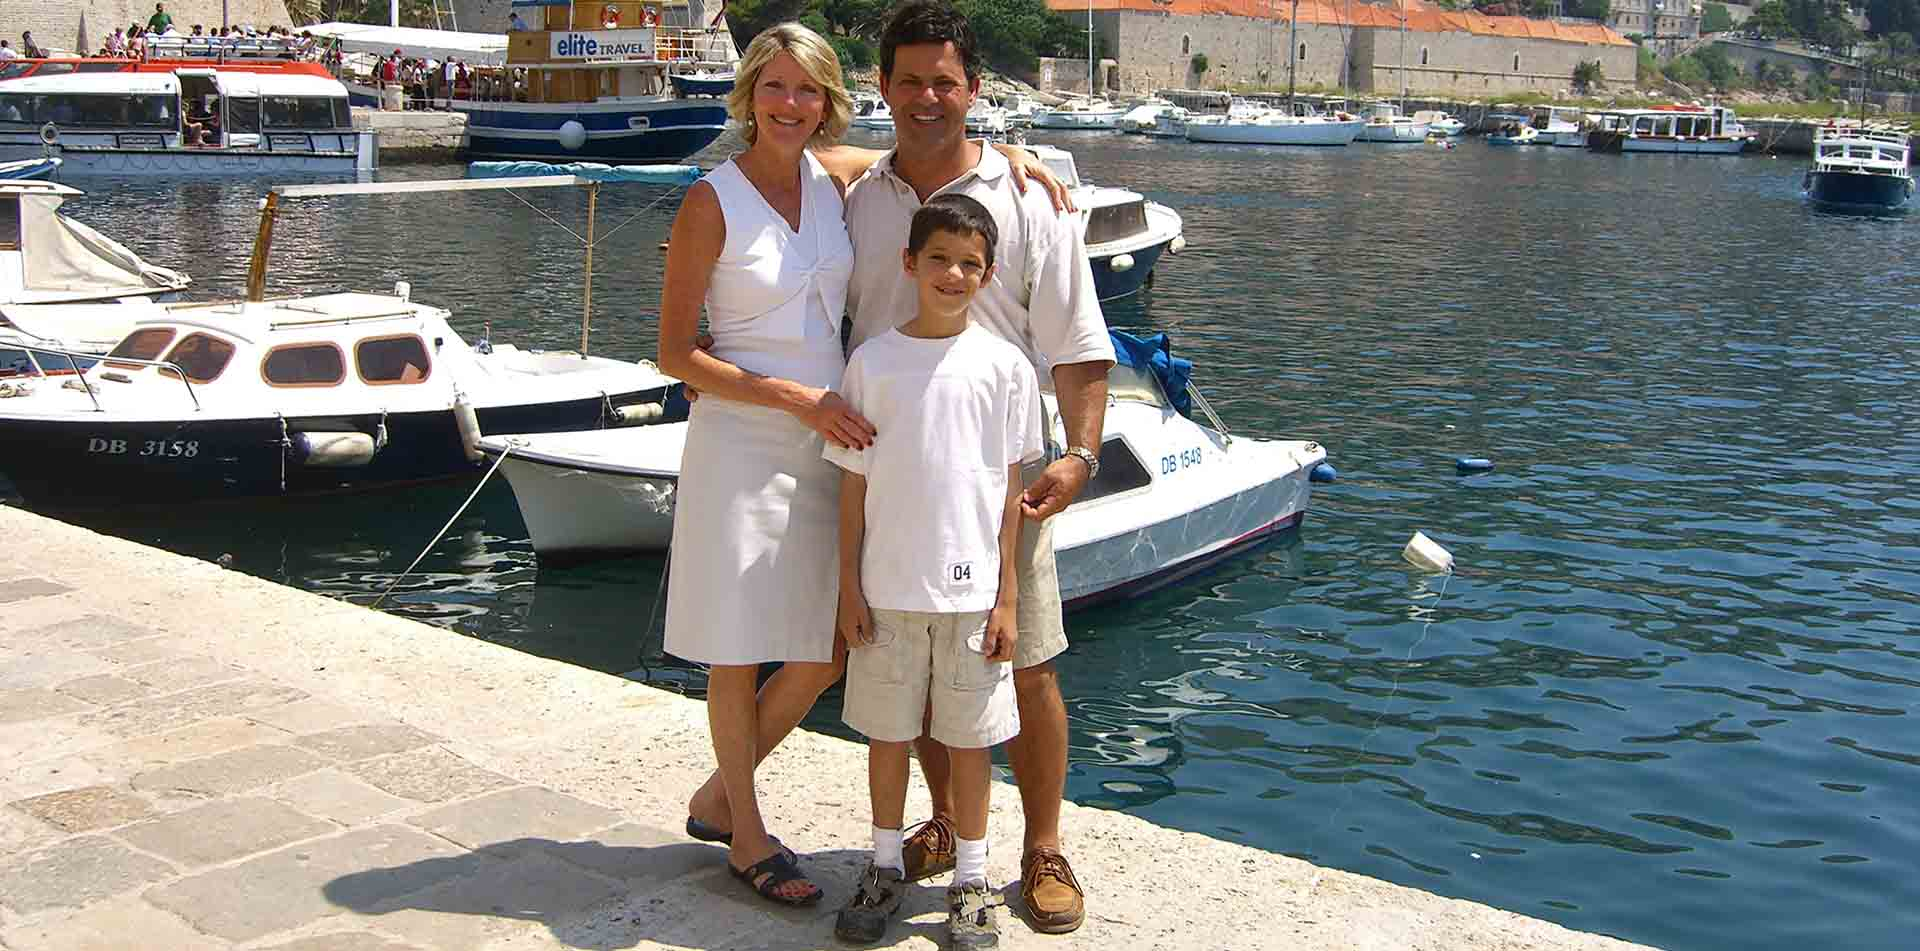 Europe Croatia happy family smiling concrete dock tourists boat excursion port - luxury vacation destinations